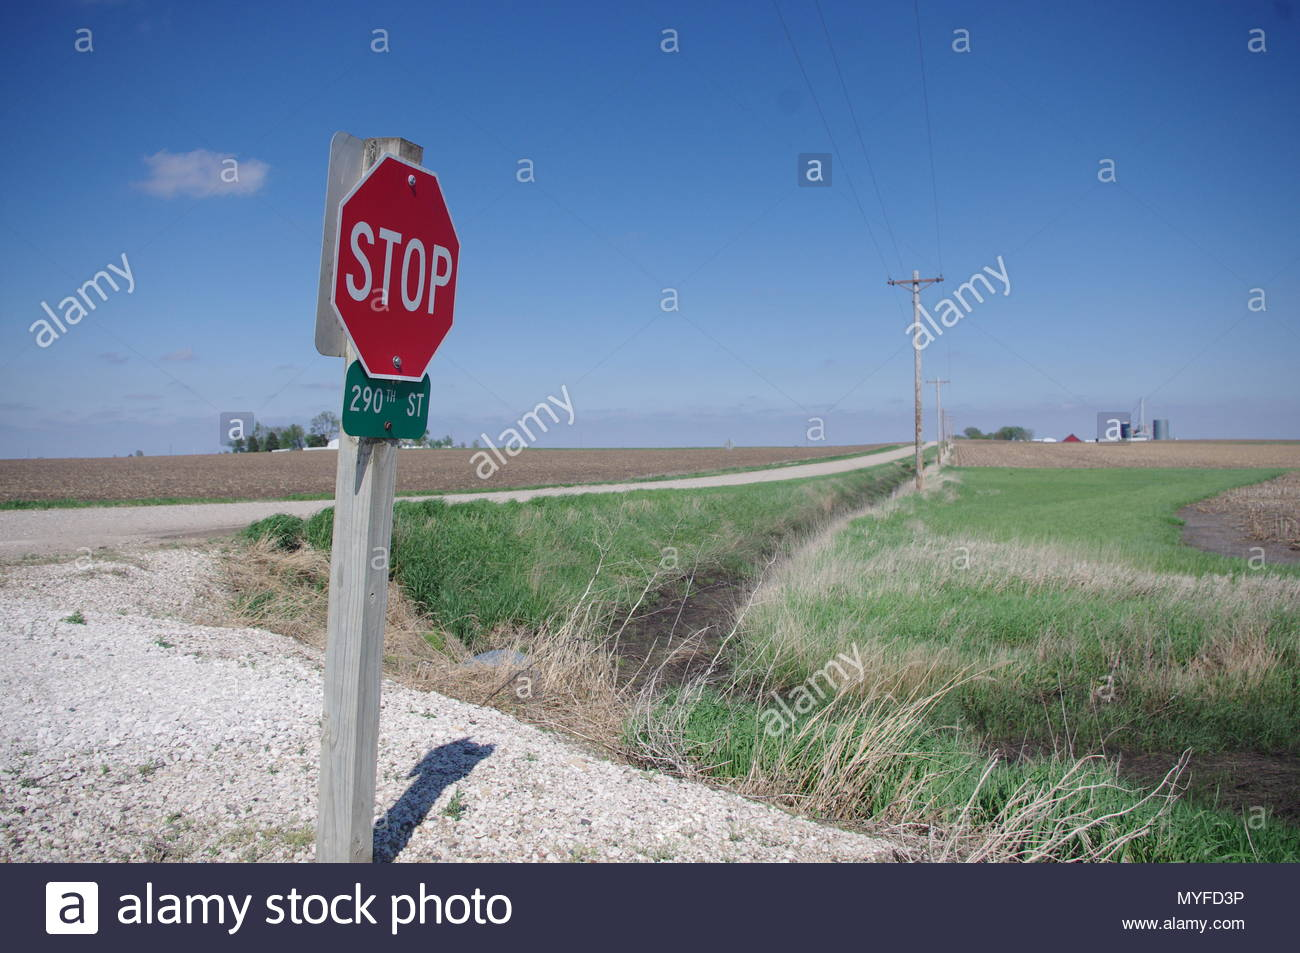 Rural junction, Great Plains, USA - Stock Image